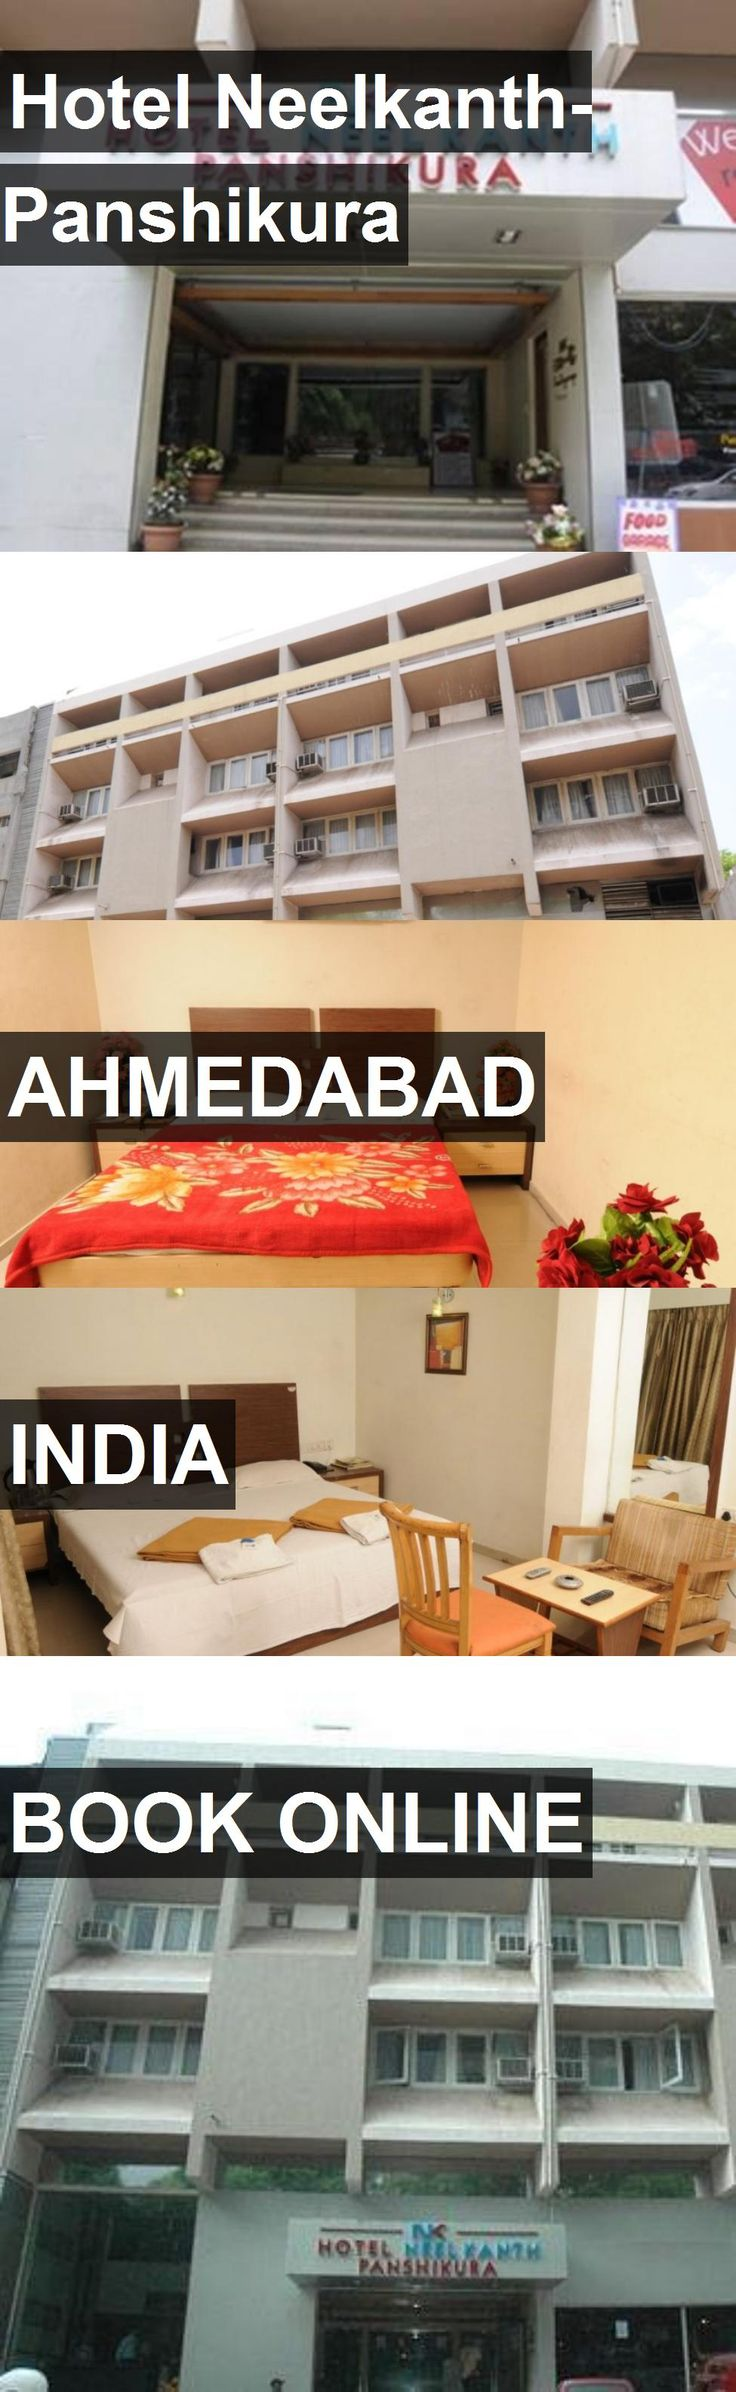 Hotel Neelkanth-Panshikura in Ahmedabad, India. For more information, photos, reviews and best prices please follow the link. #India #Ahmedabad #travel #vacation #hotel